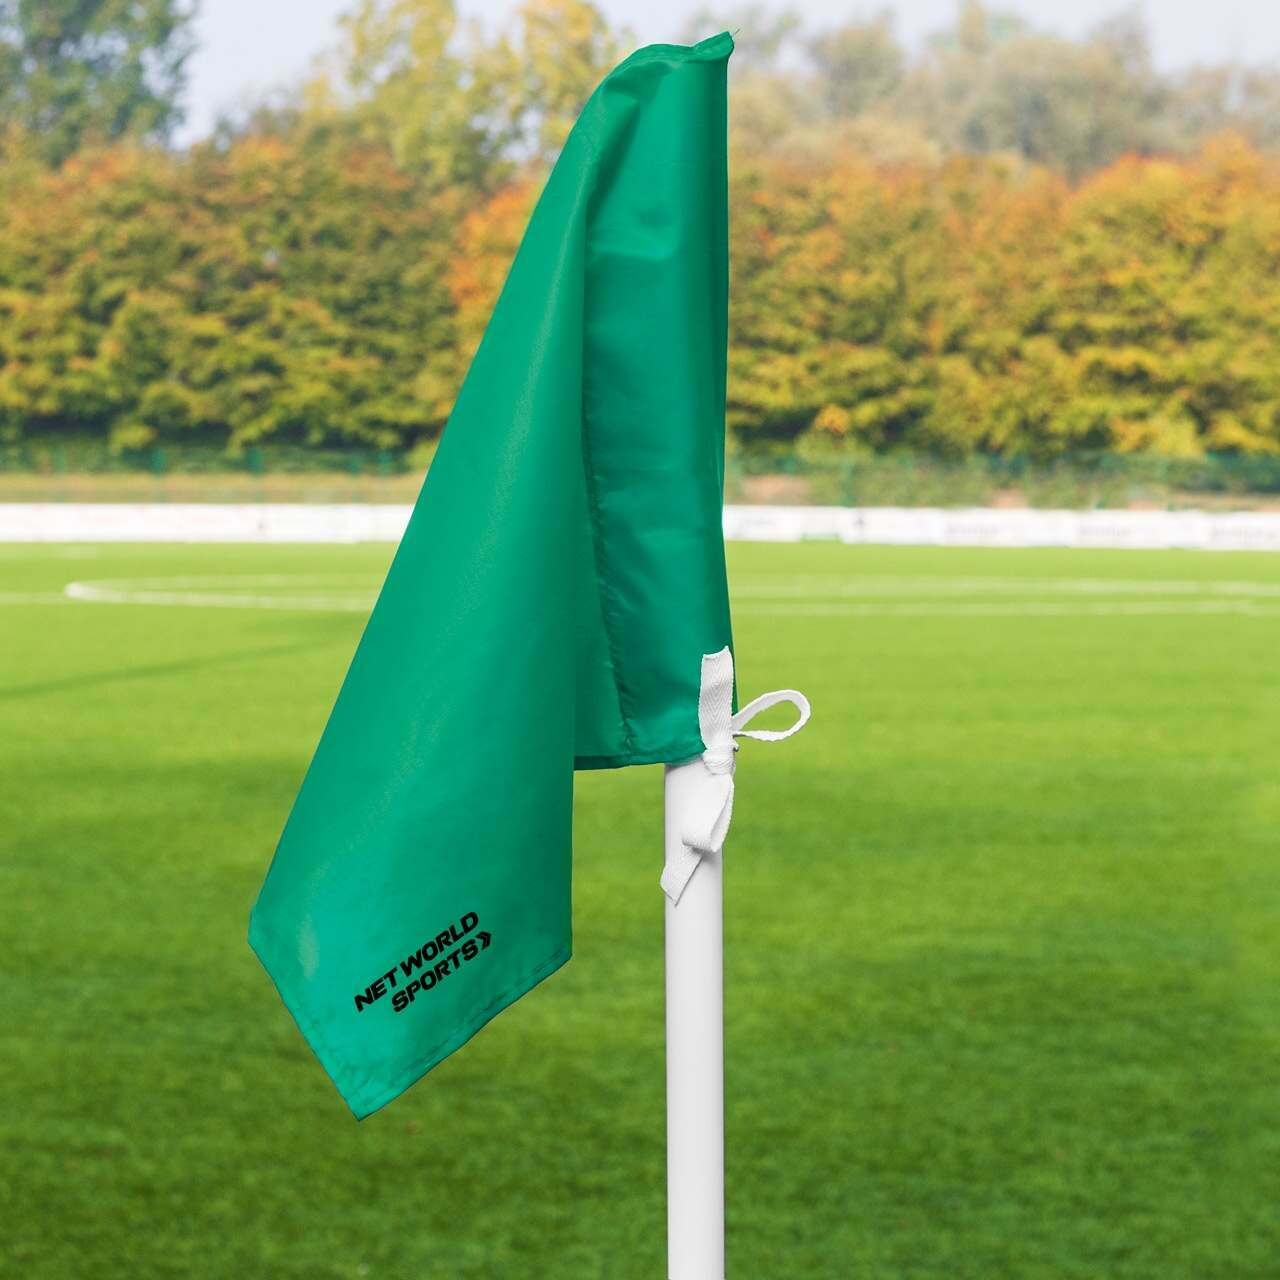 Green Spring Loaded Football Corner Flags [6 Pack]